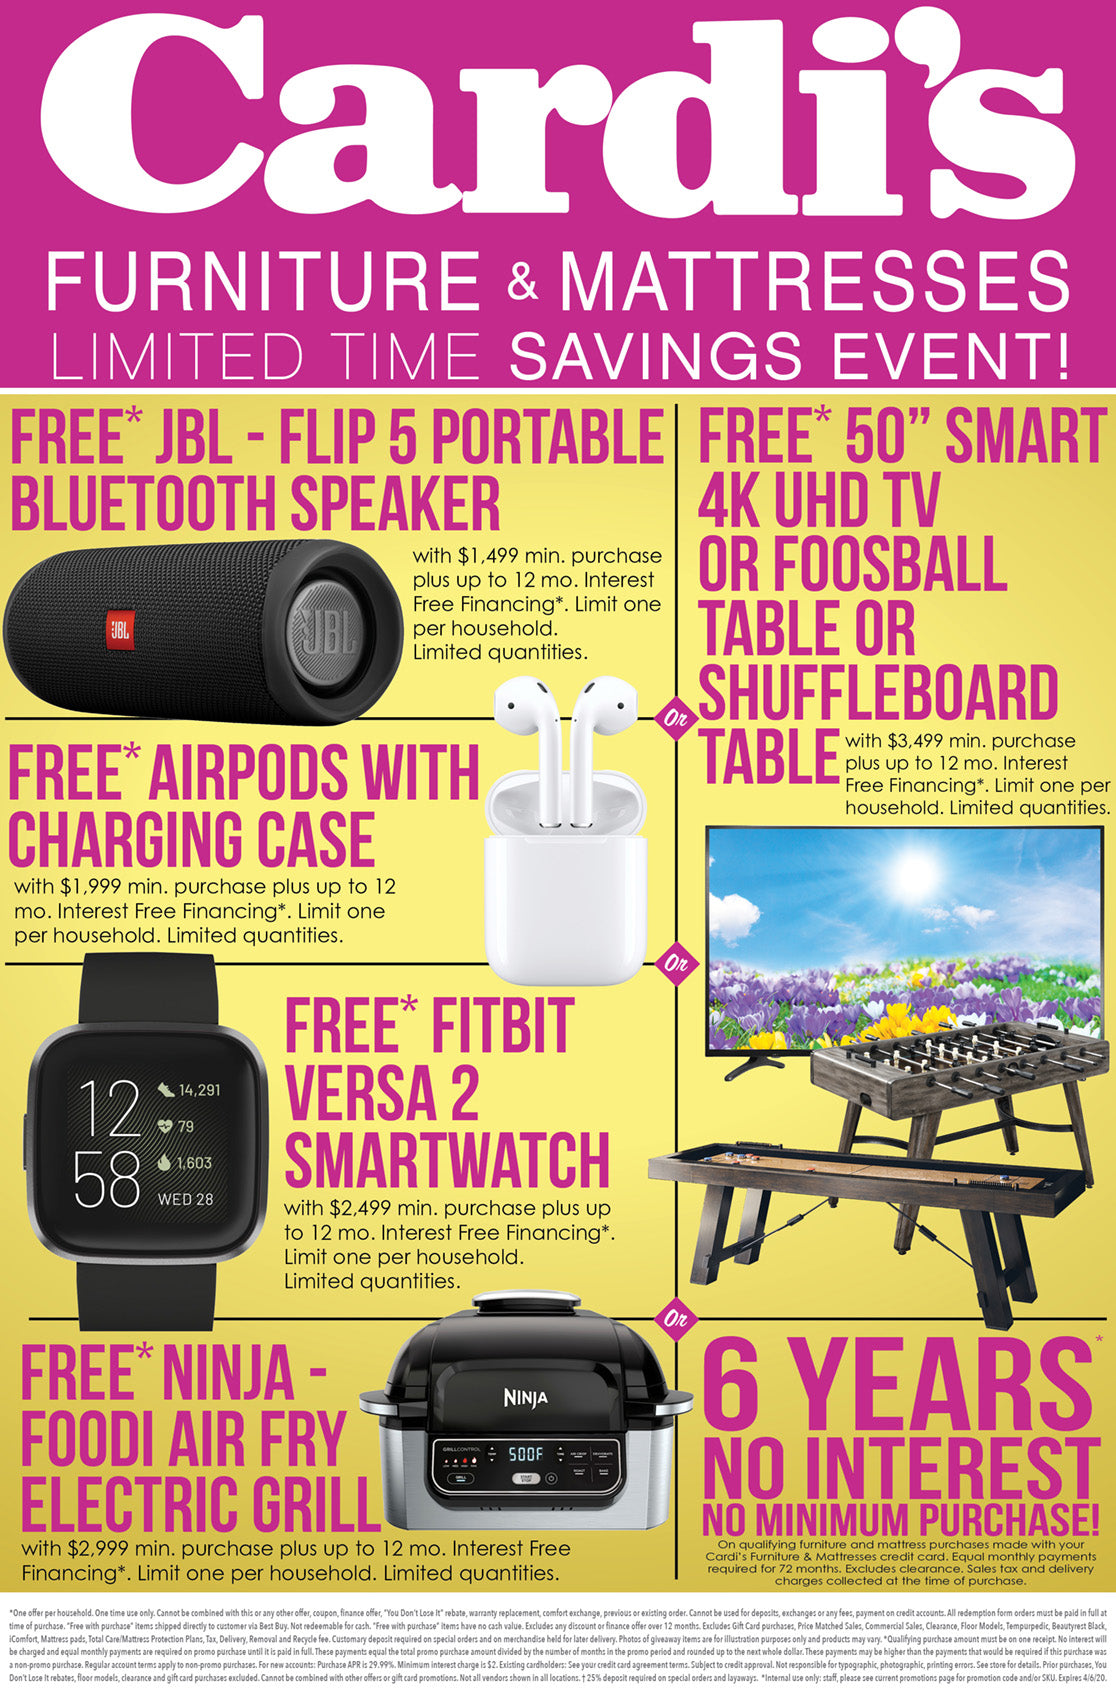 Free* Bluetooth Speaker or AirPods or FitBit or Air Fryer or 50 Inch 4k UHD TV or Foosball Table or Shuffleboard Table with minimum purchase... or 6 Years No Interest